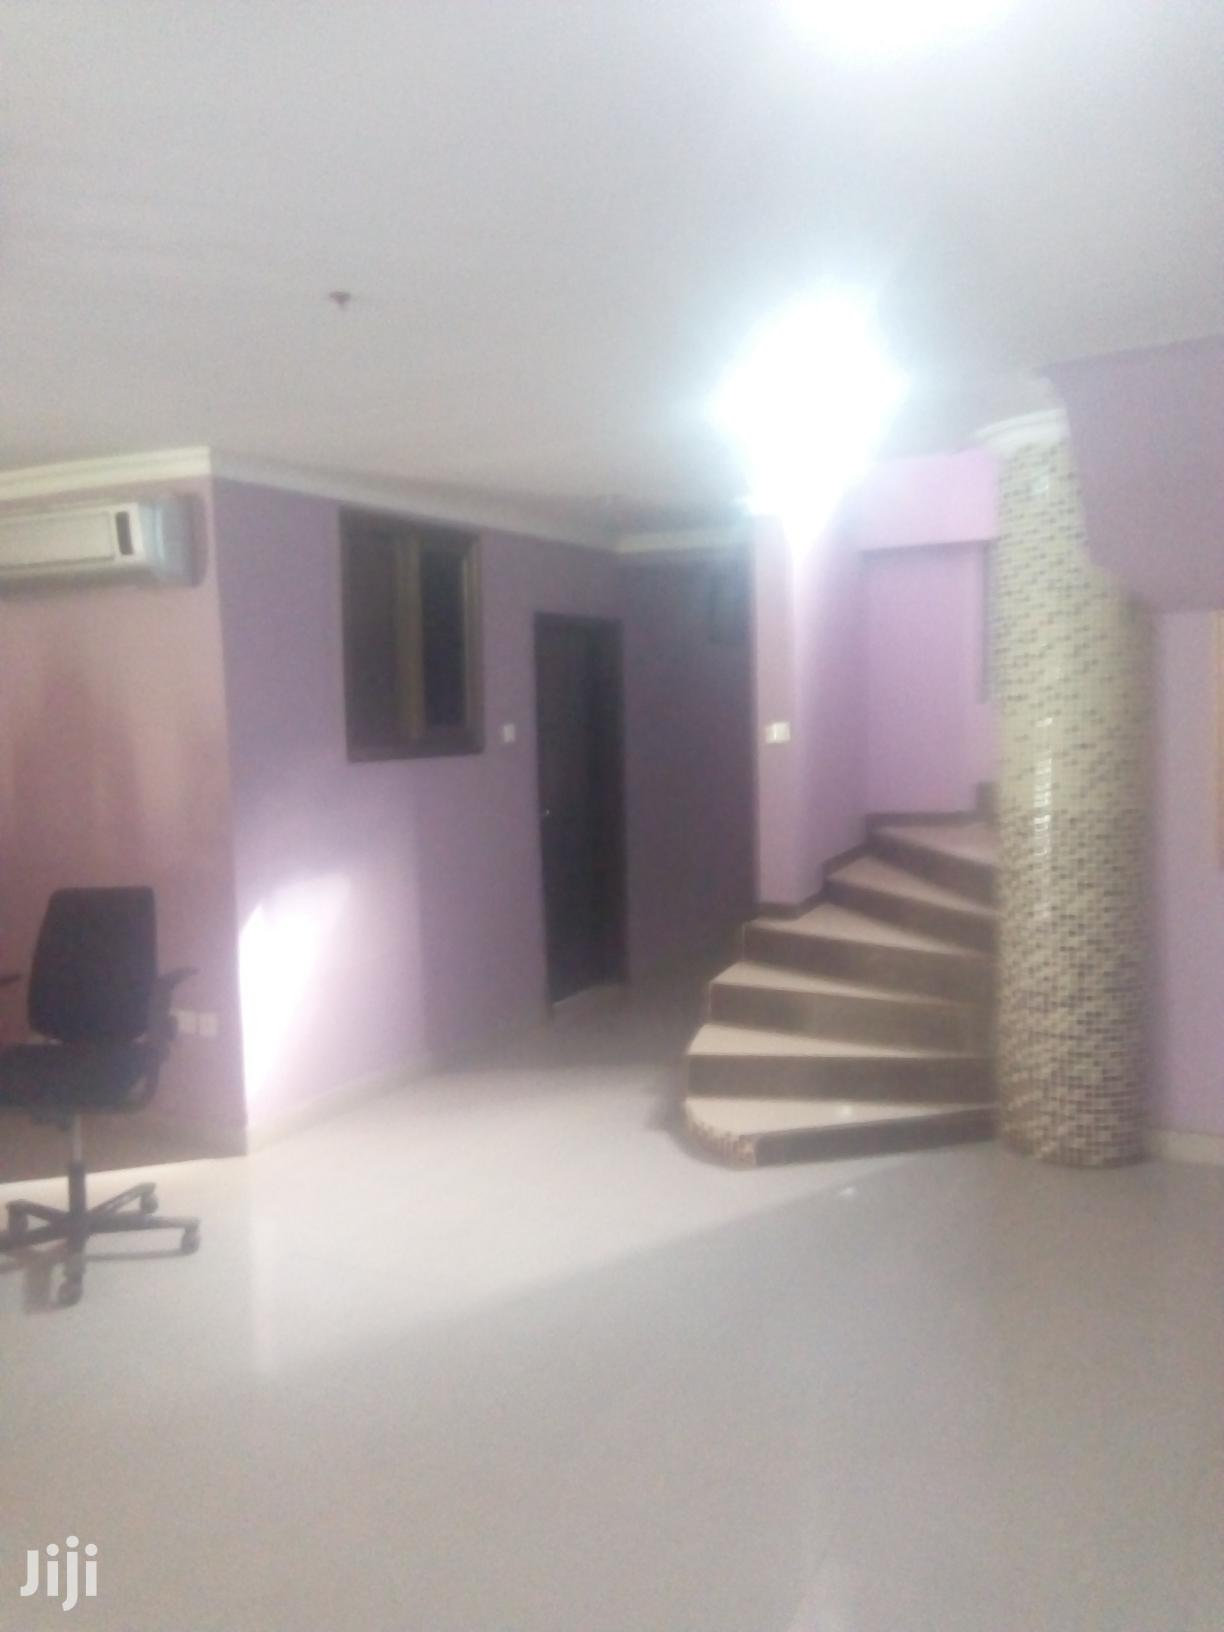 Archive: Space 4 House Parties Tema C6